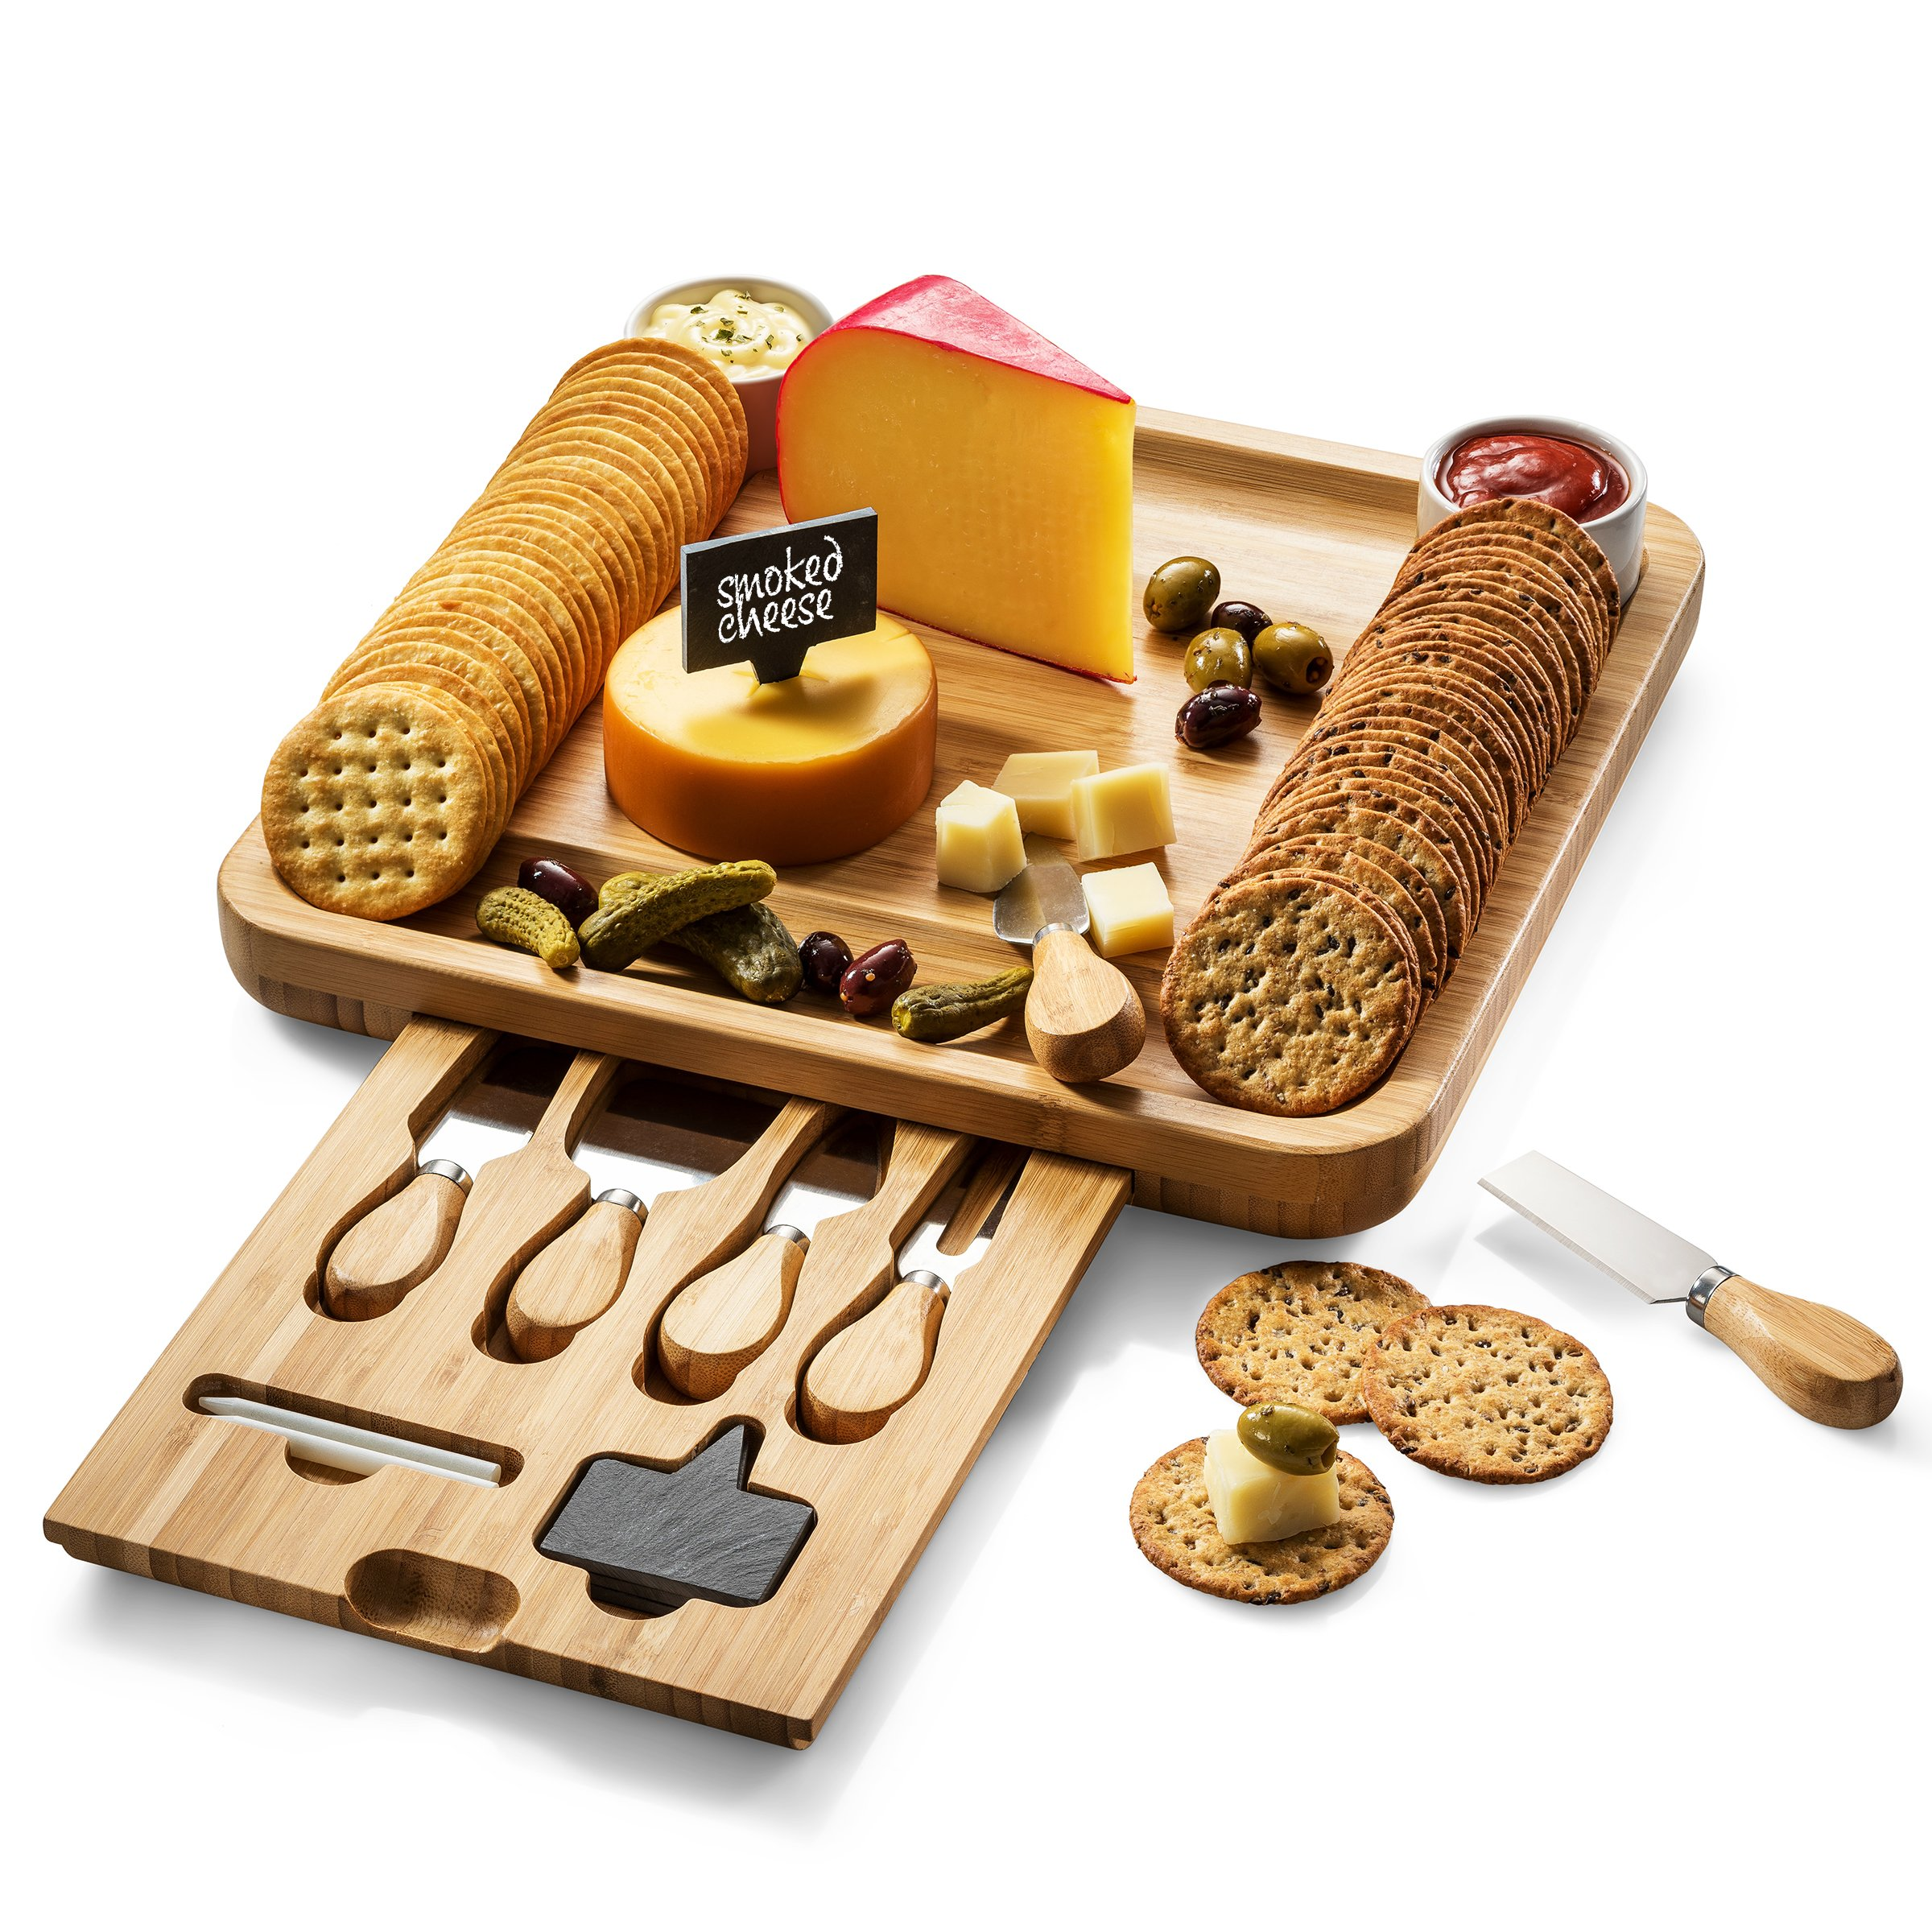 Bamboo Cheese Board With Cutlery Server Set Meat Wood Charcuterie Serving Platter Tray With 2 Ceramic Bowls & 3 Slate Labels & 2 Chalk Markers.With Hidden Drawer Comes with 4 Stainless Steel Knives